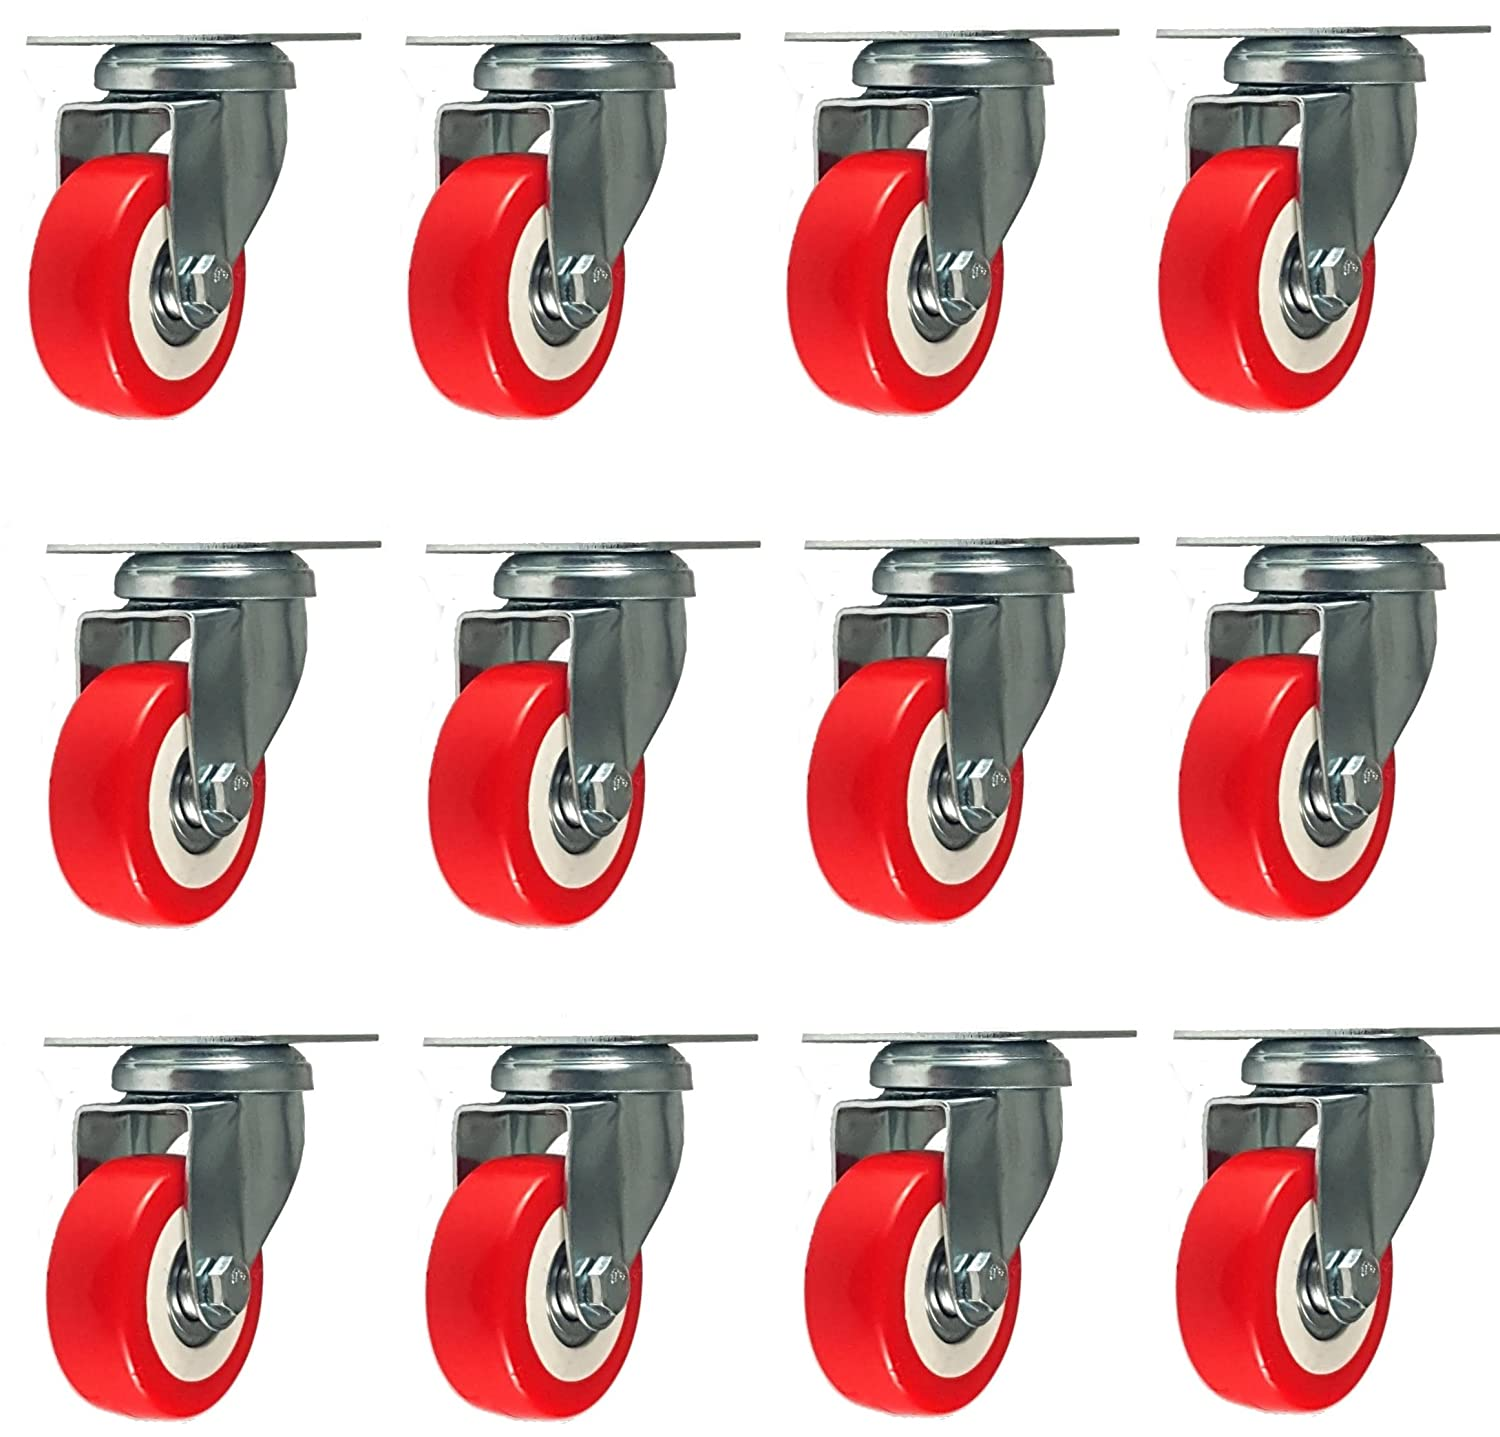 12 Pack Caster Wheels Swivel Plate Casters On Red Polyurethane Wheels 1,500 Lbs